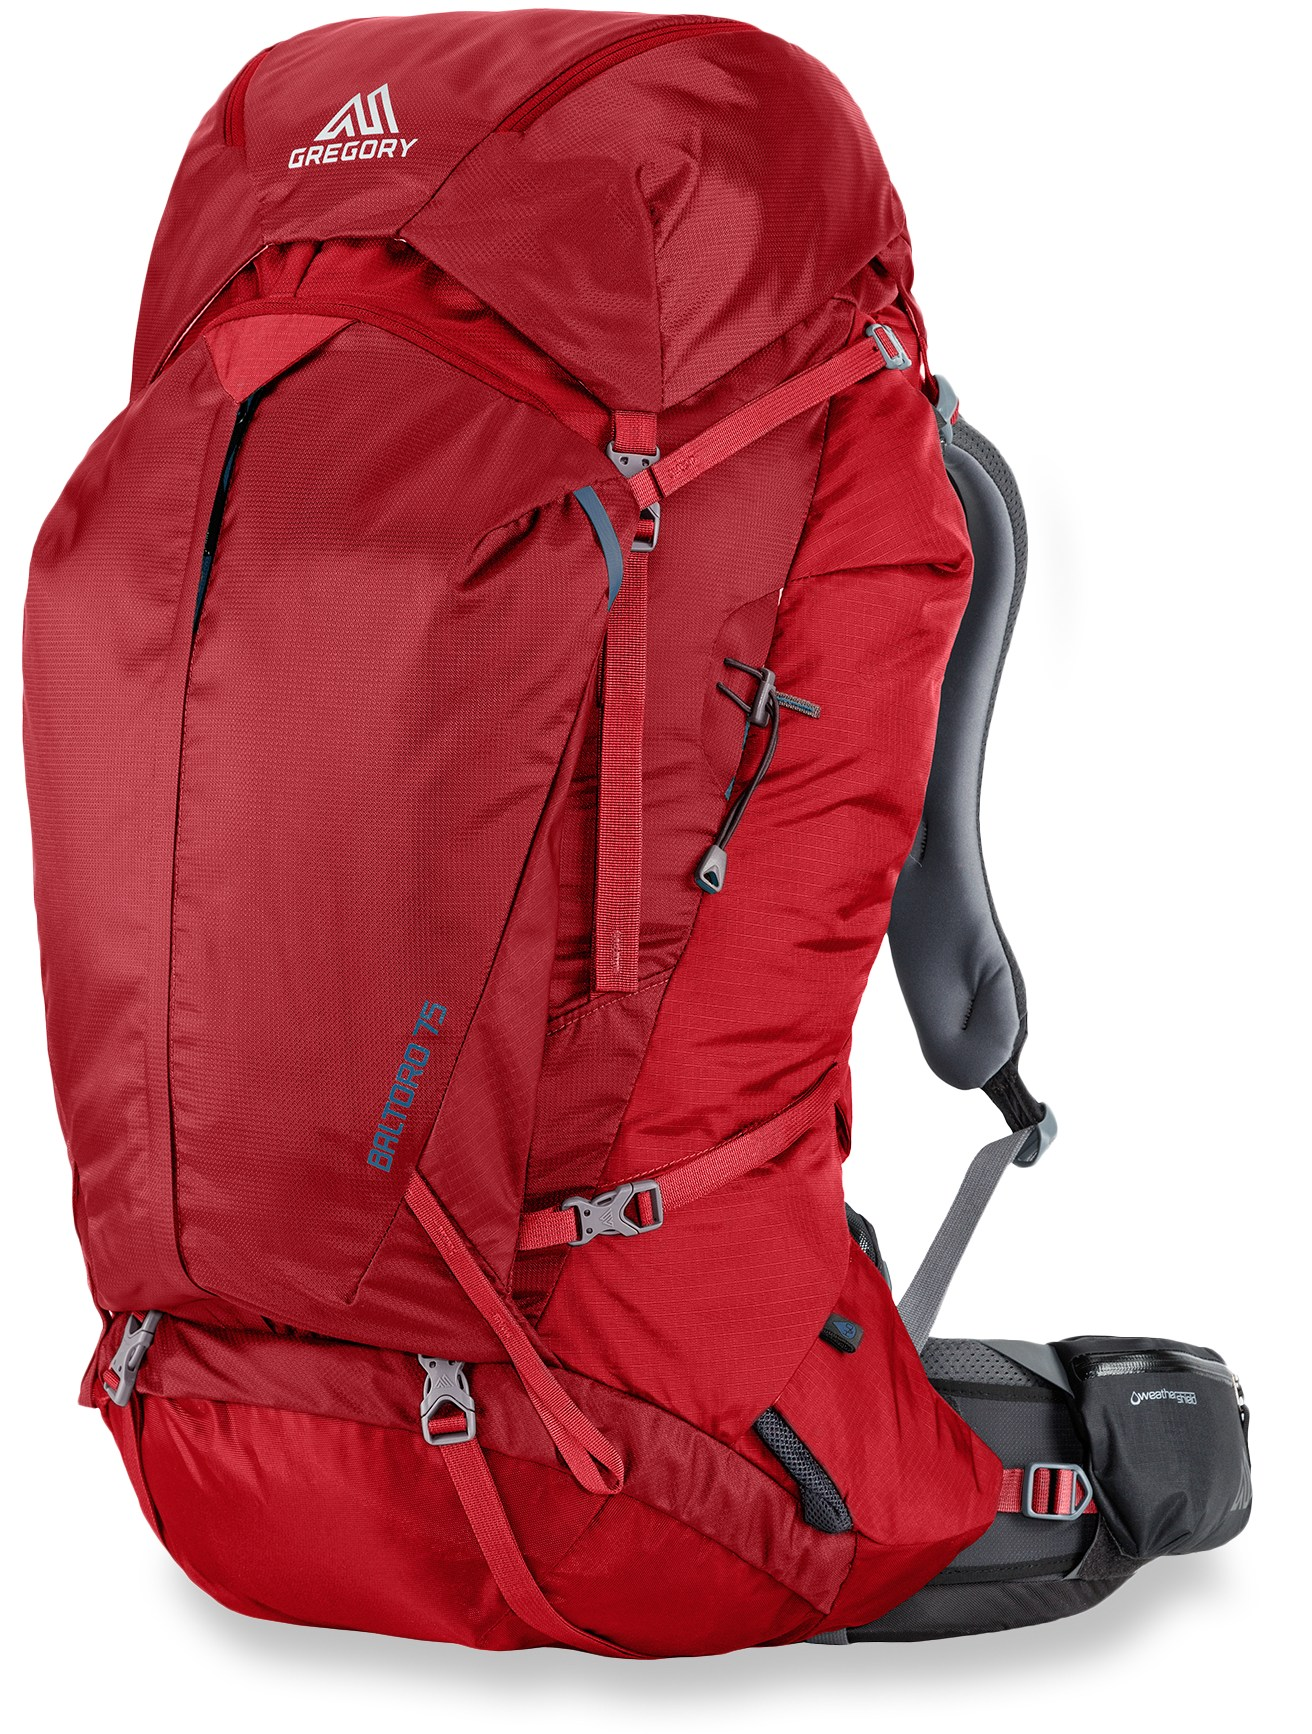 Gregory Baltoro 75 Backpack at REI   Save Big on Backpacking Gear